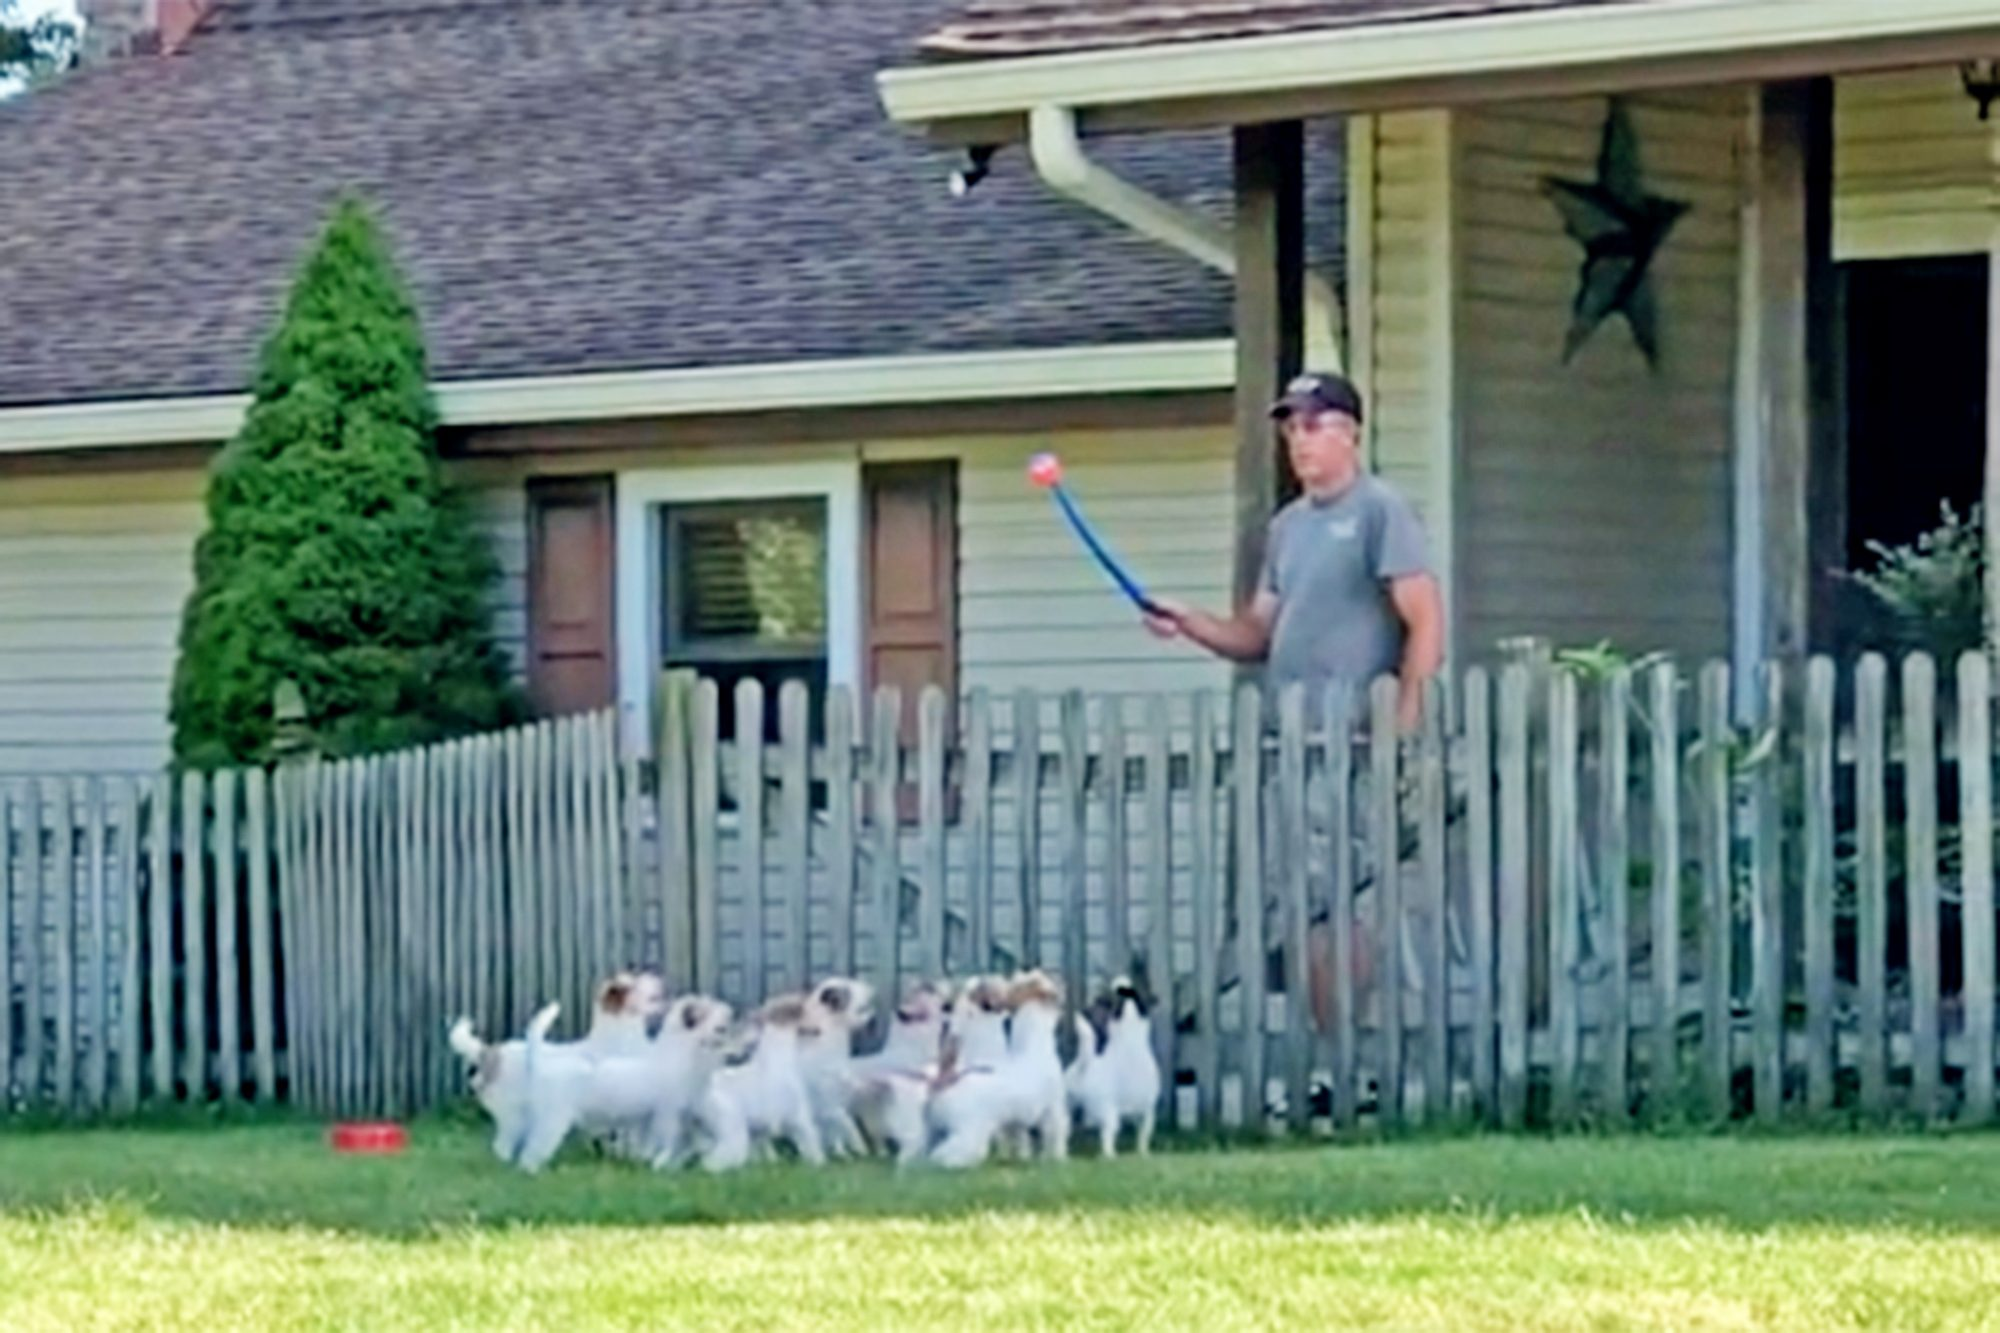 Jack Russell terries get excited for a game of fetch